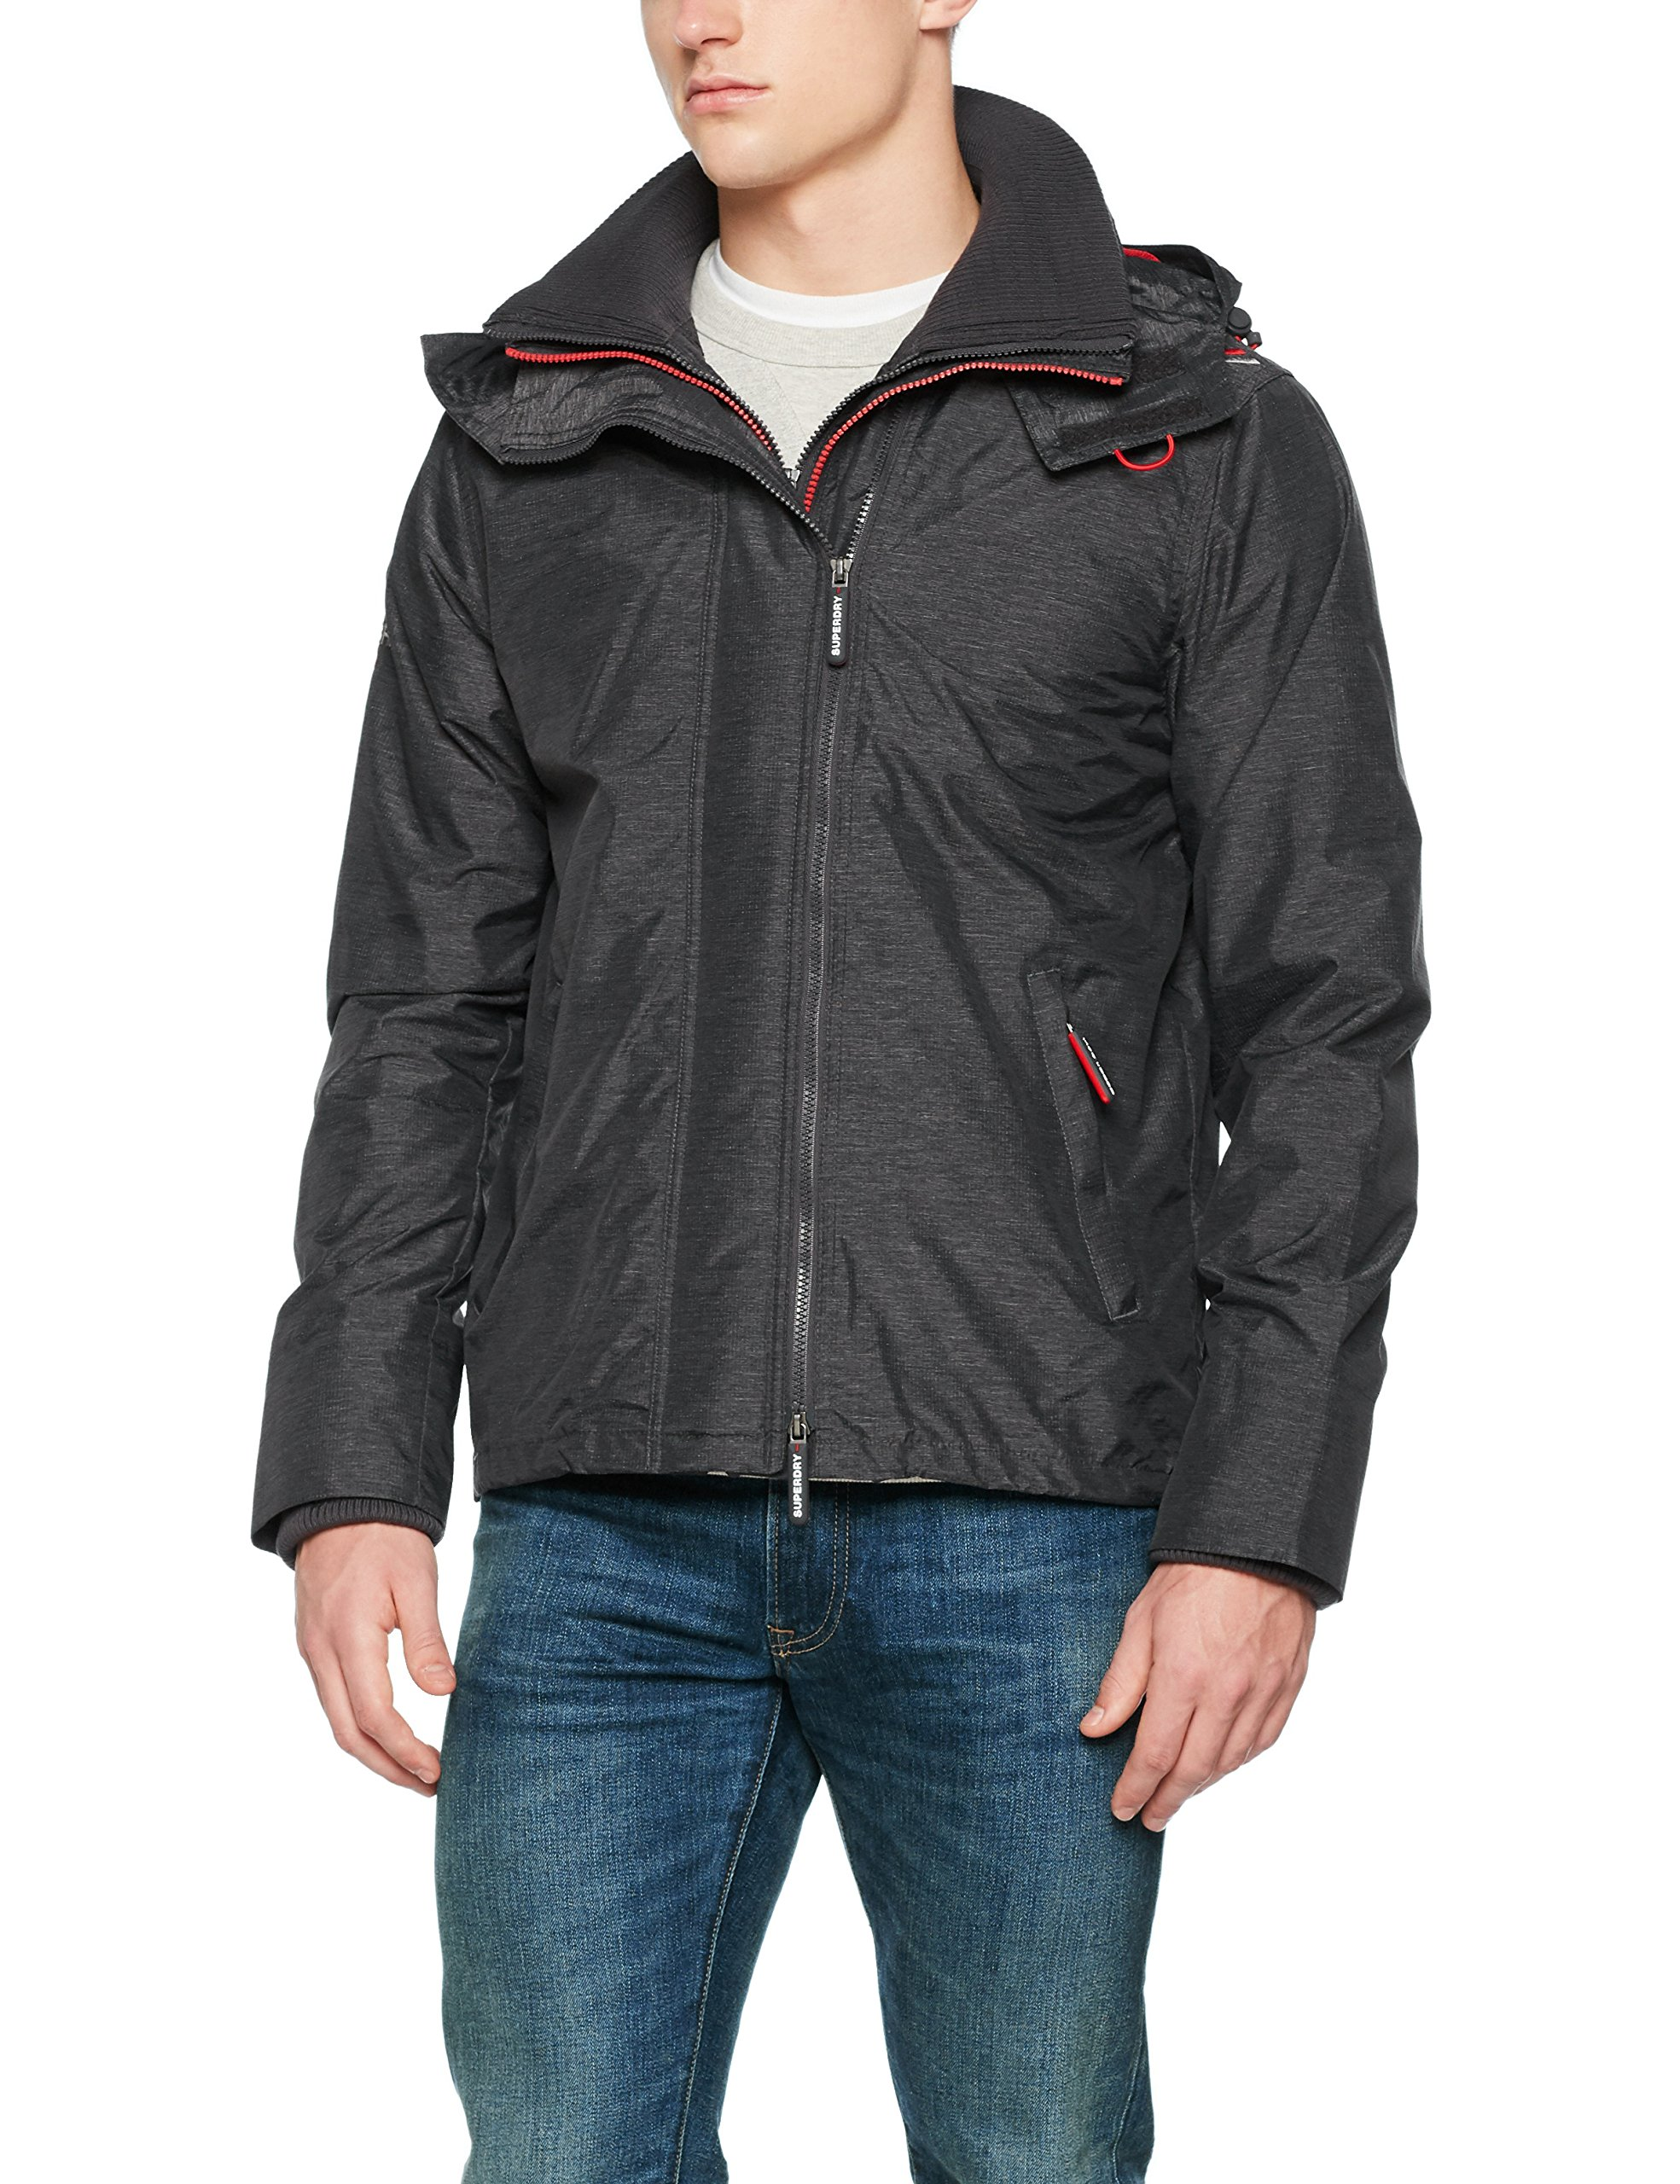 Homme Tech Superdry court Red SportGrismid Grey Marl Pop De Veste Nx4L Wndcheter Nb Zip oBeCxd